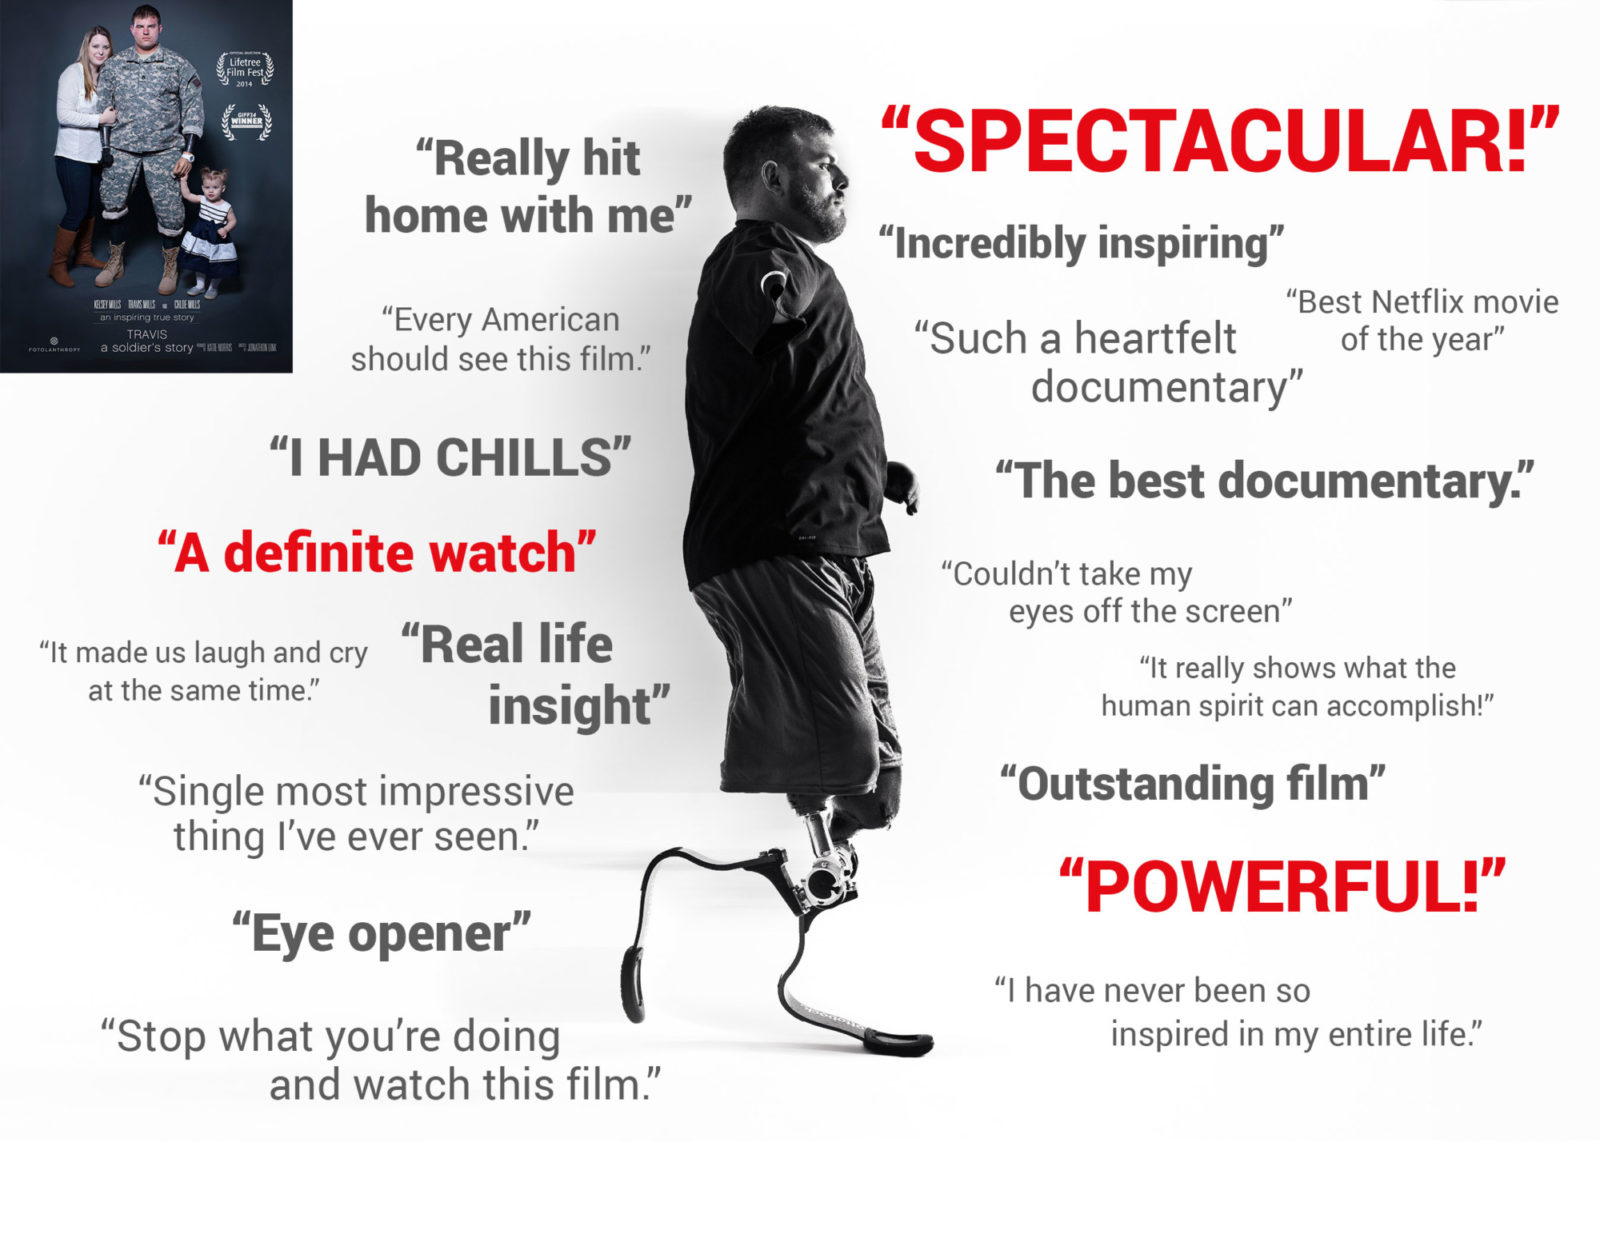 Image showcasing reviews about Travis: A Soldier's Story. A movie about Army Staff Sergeant Travis Mills.